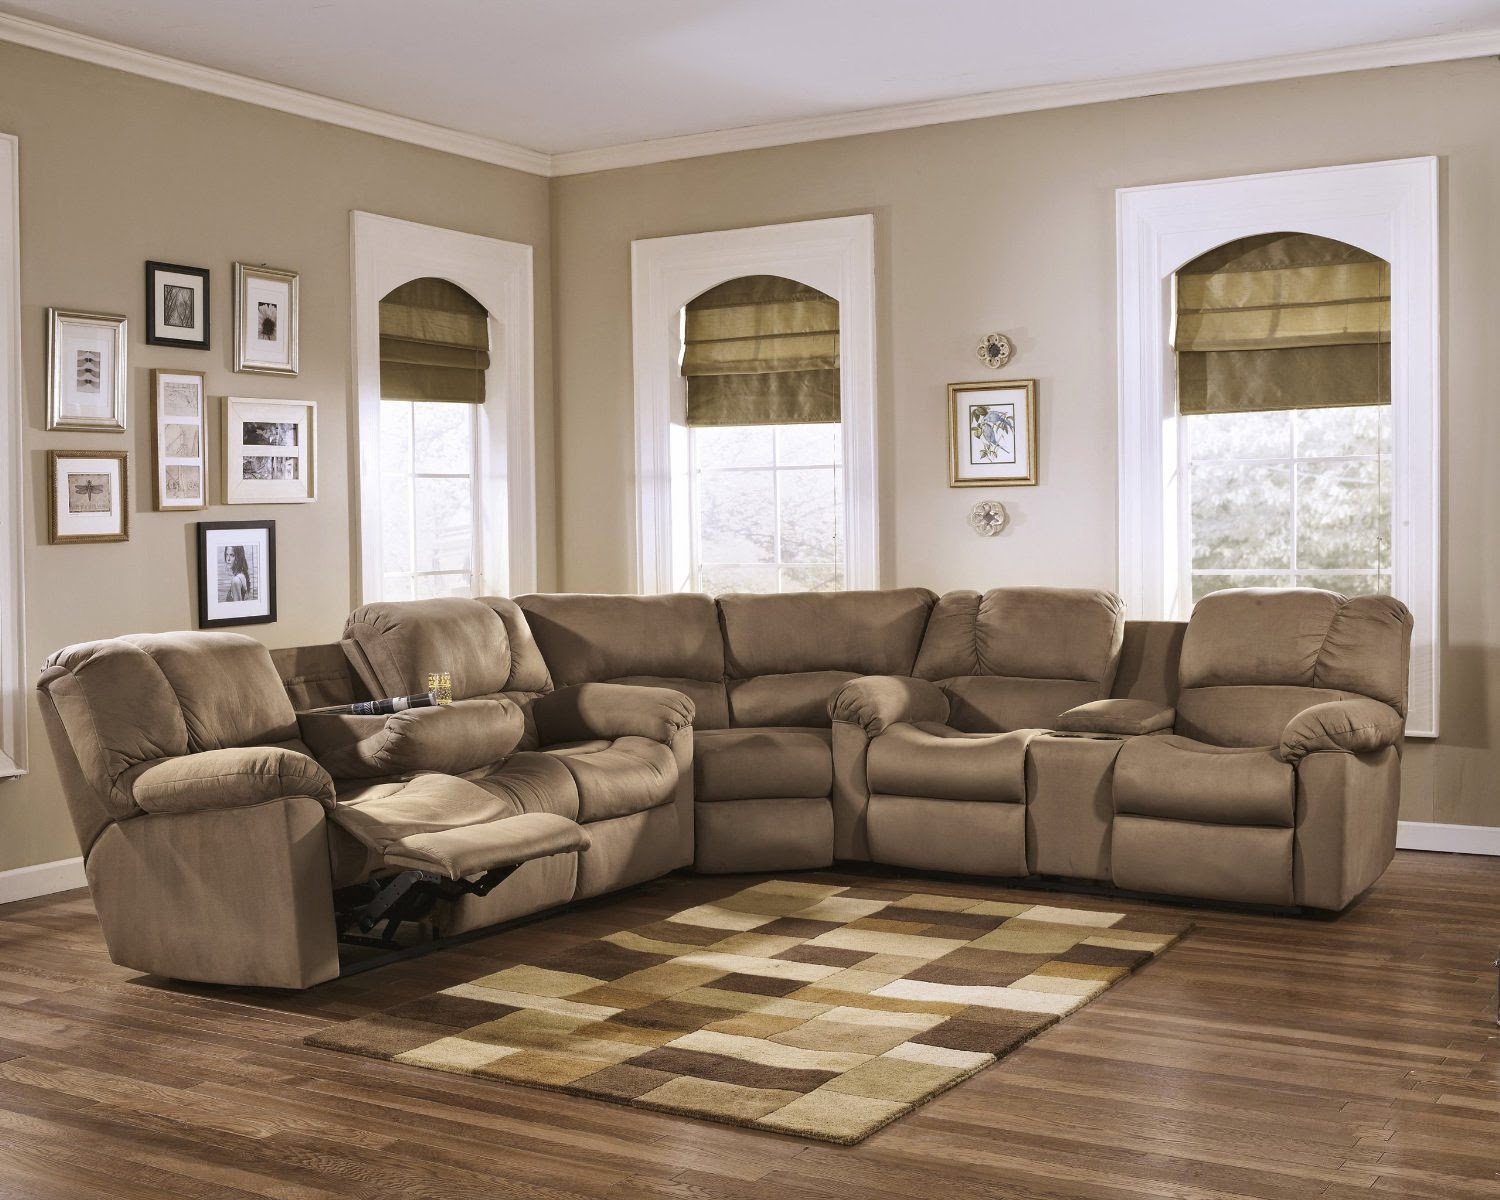 england furniture sofas reviews cheap recliner sectional reclining sale eli cocoa sofa review